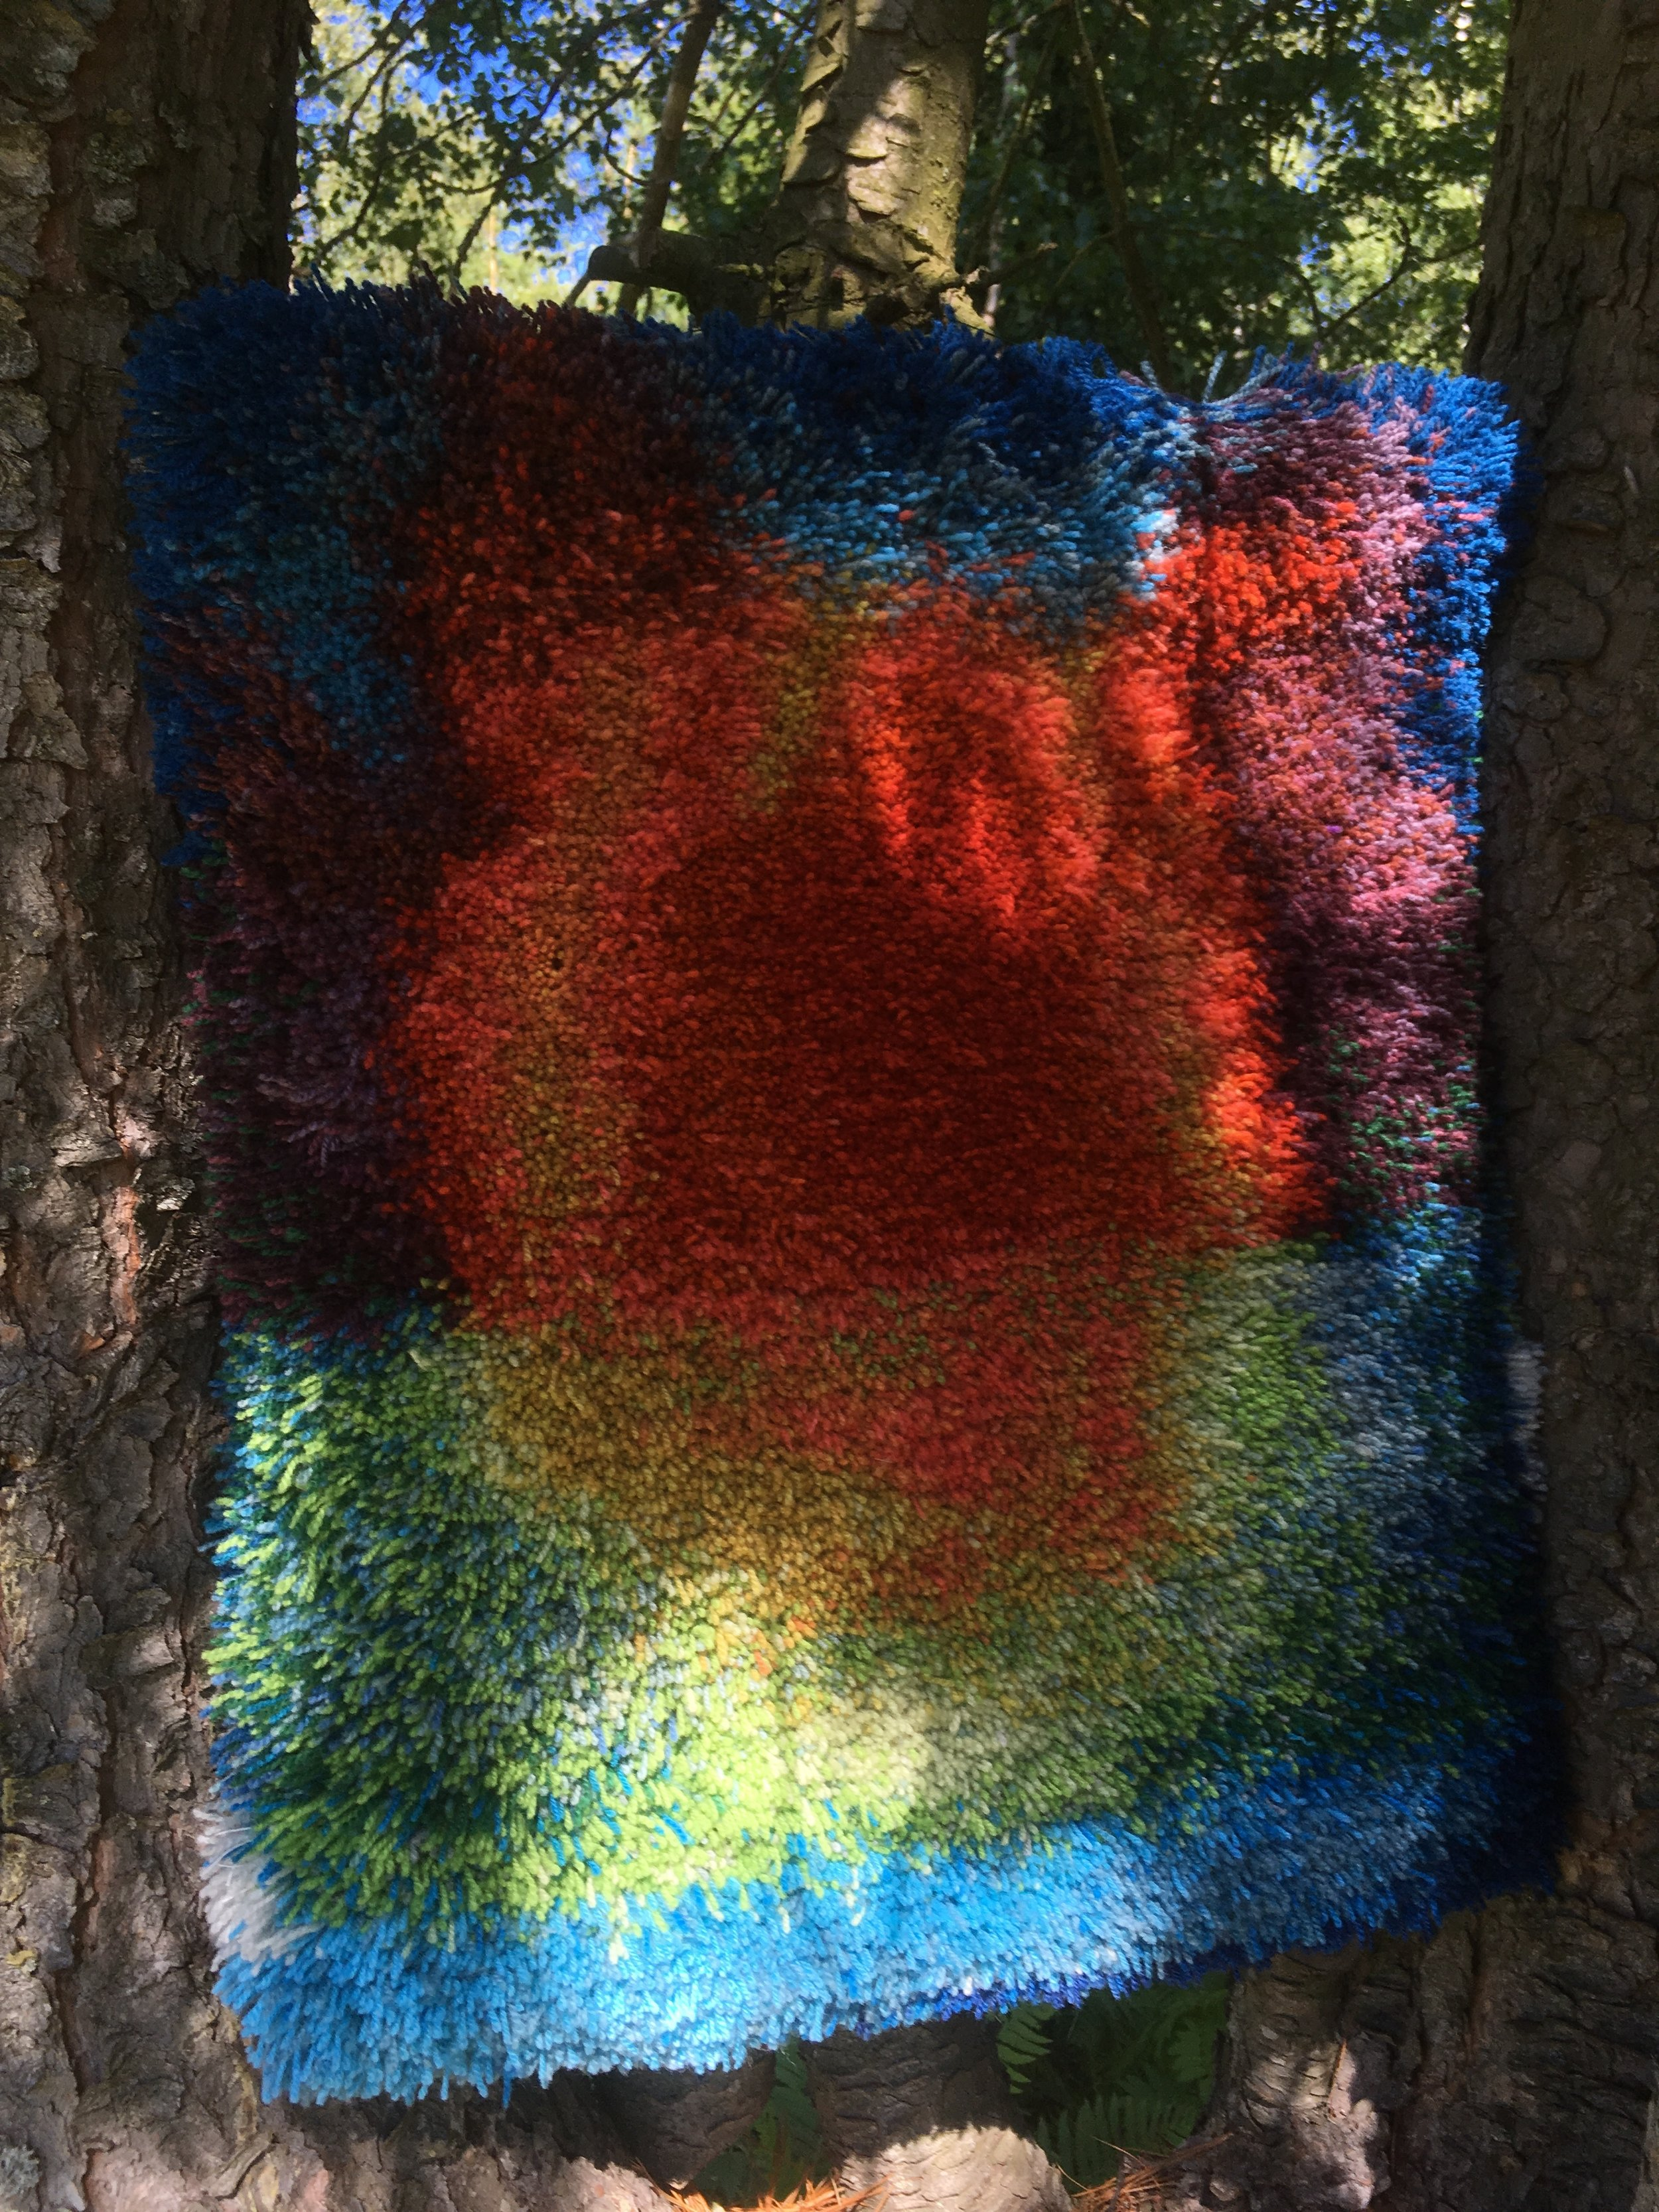 Taideryijy luonnossa / Art Tapestry in nature